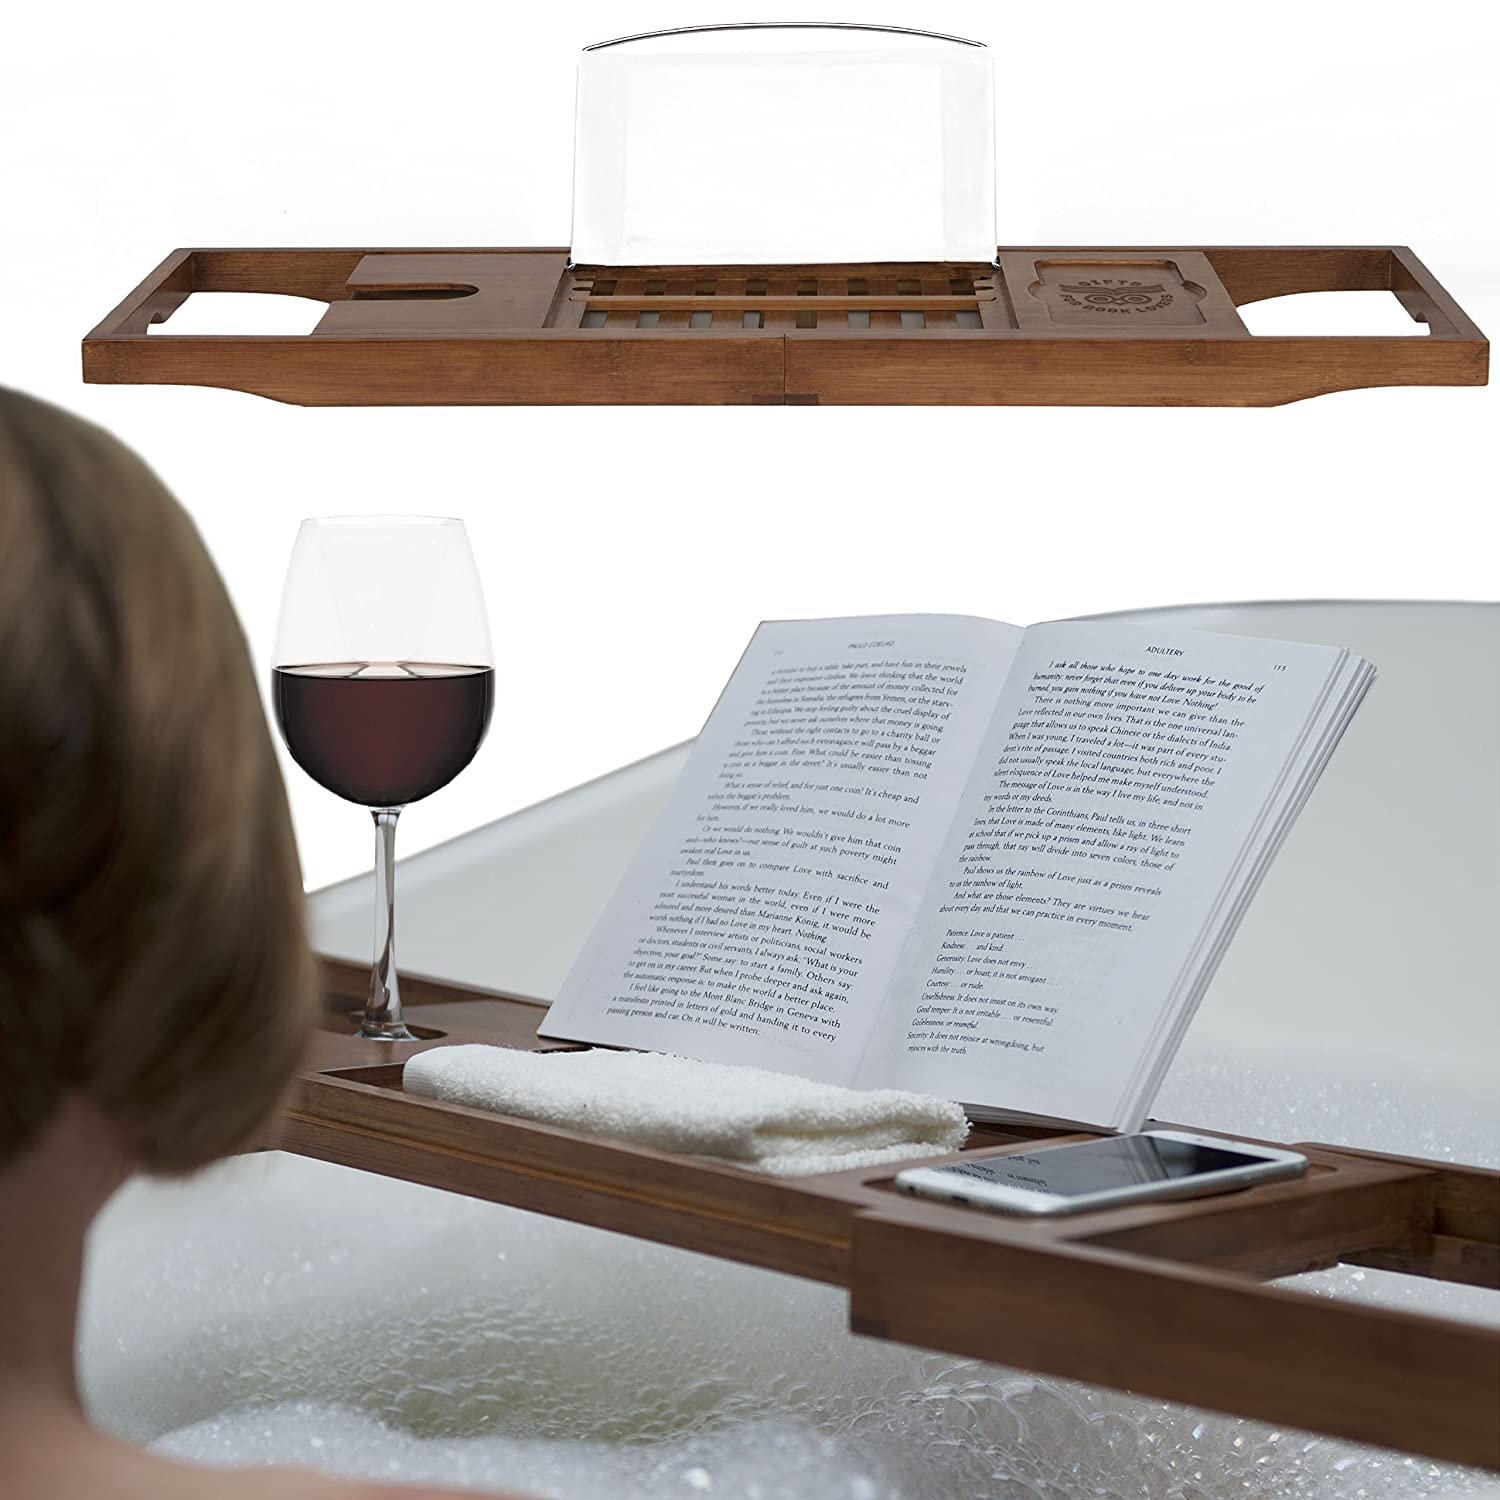 bamboo bathtub caddy with extending sides wine glass reading u0026 tablet stand u2013 warm walnut brown wood great christmas gift by gifts for book lovers